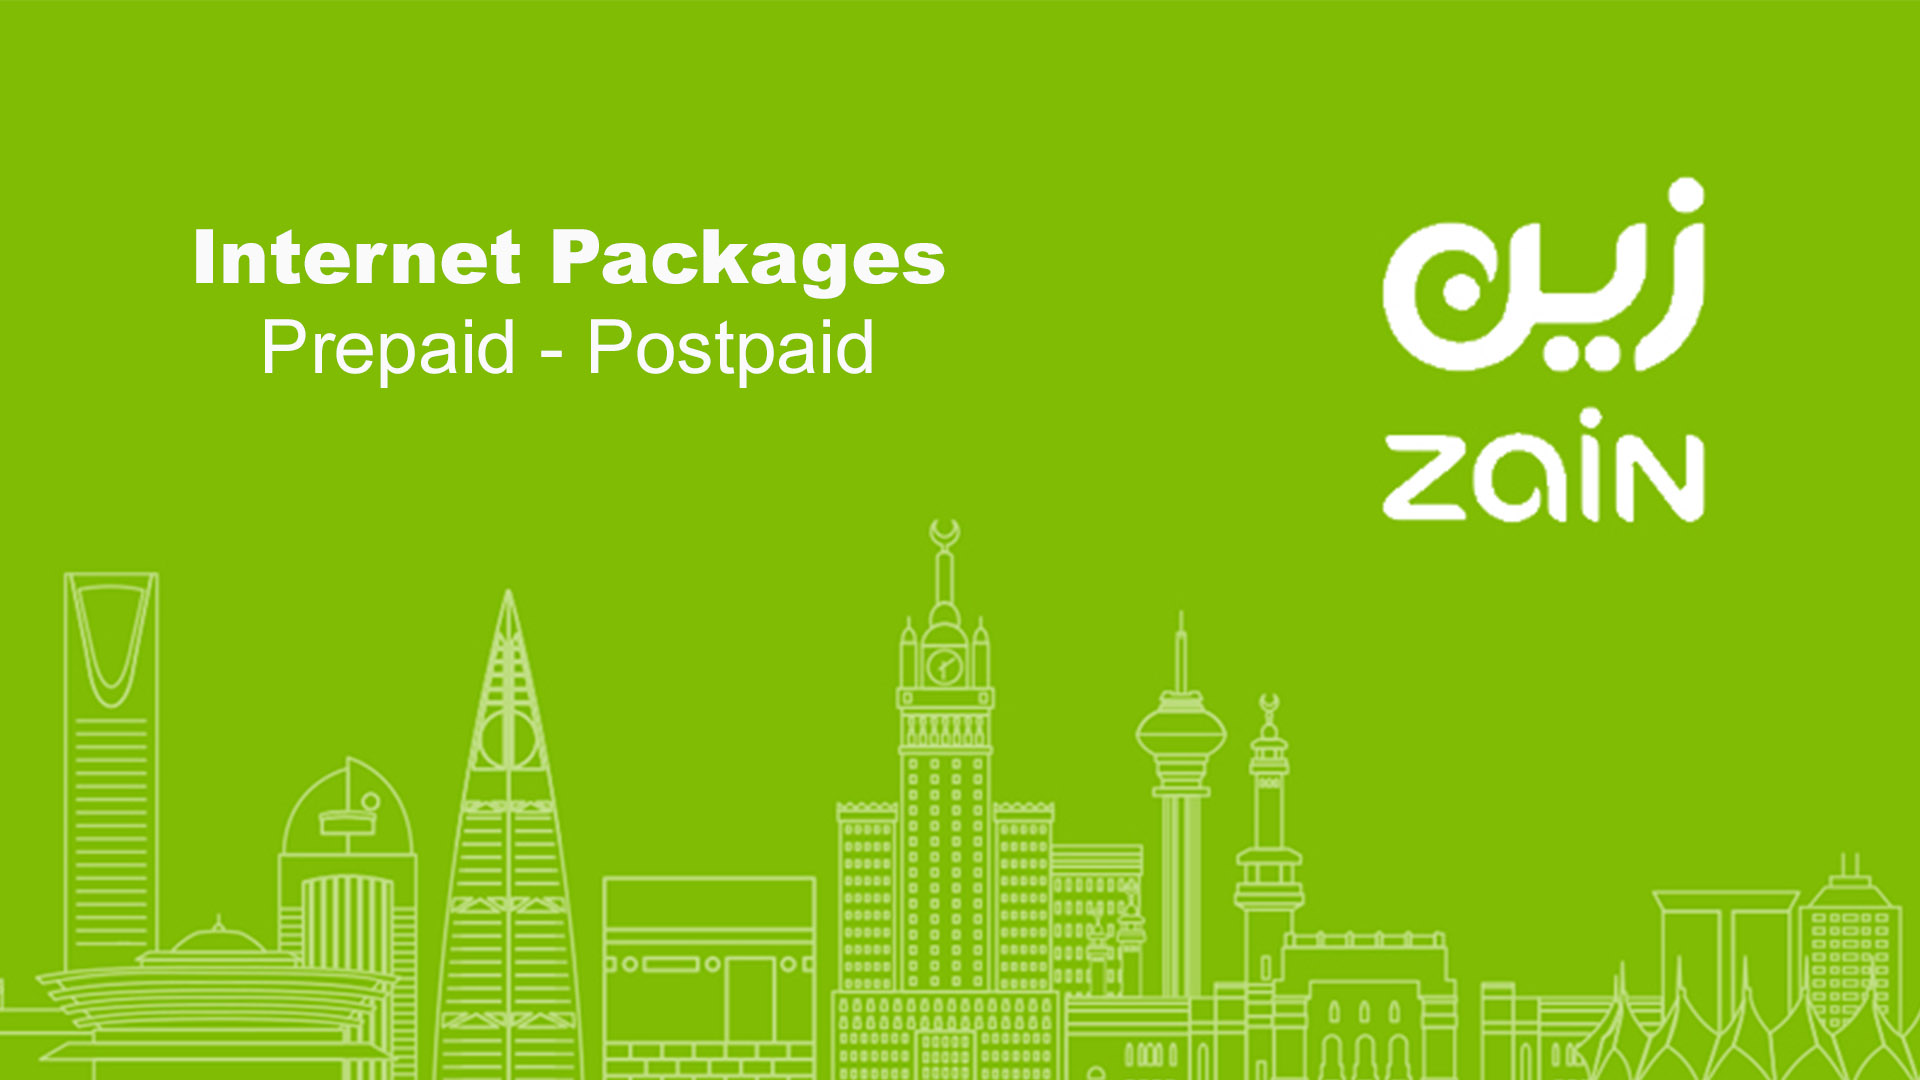 Zain Internet Packages Daily Weekly Monthly Prepaid Postpaid Techwafer